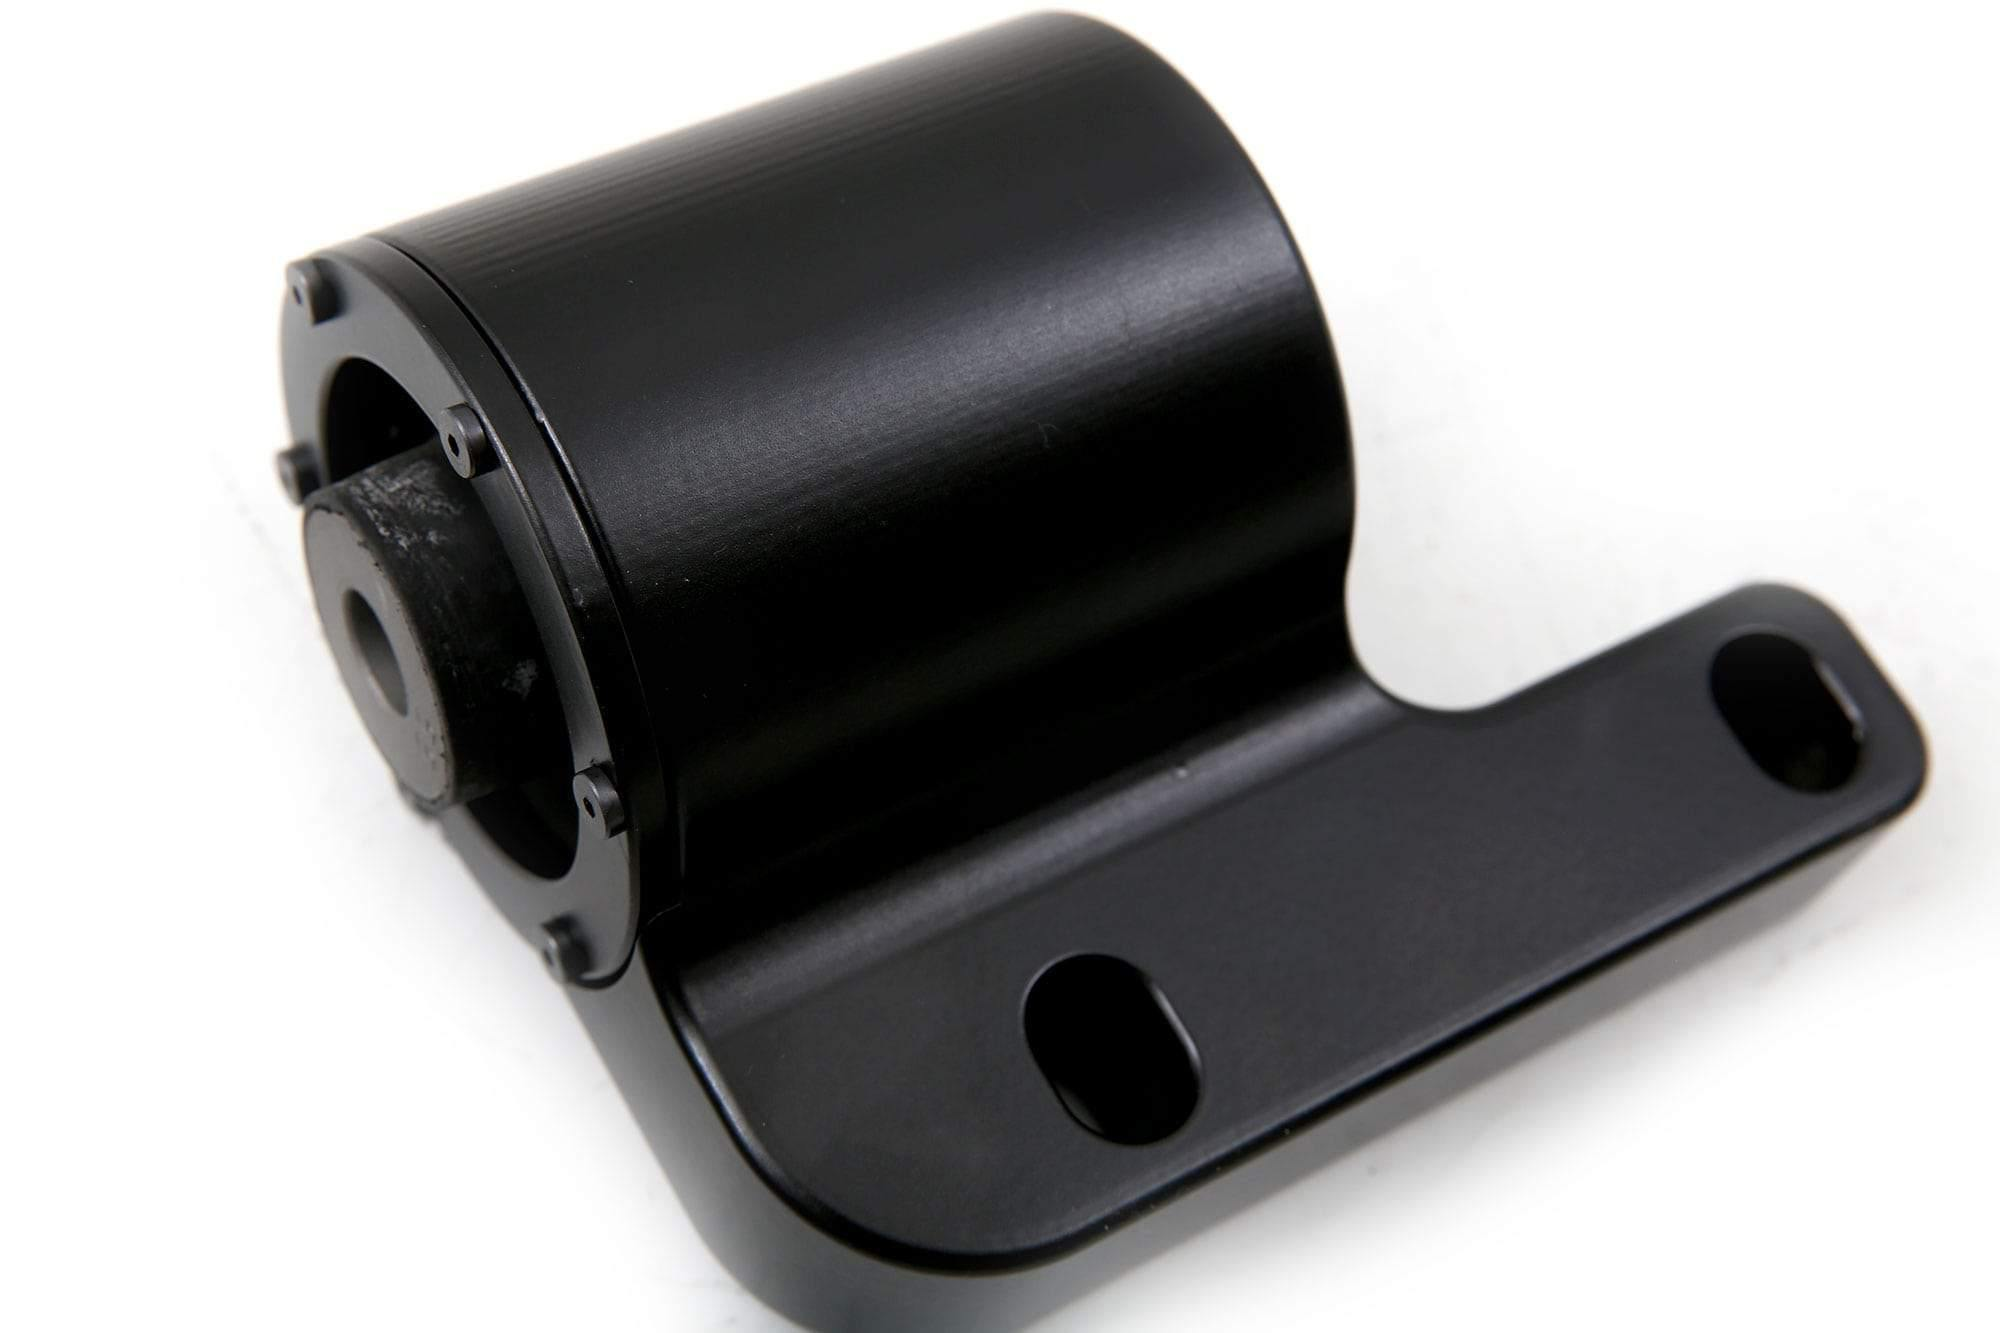 CP-E xFlex Passenger Side Mount | Multiple VW/Audi Fitments (VWXM00003/4B)